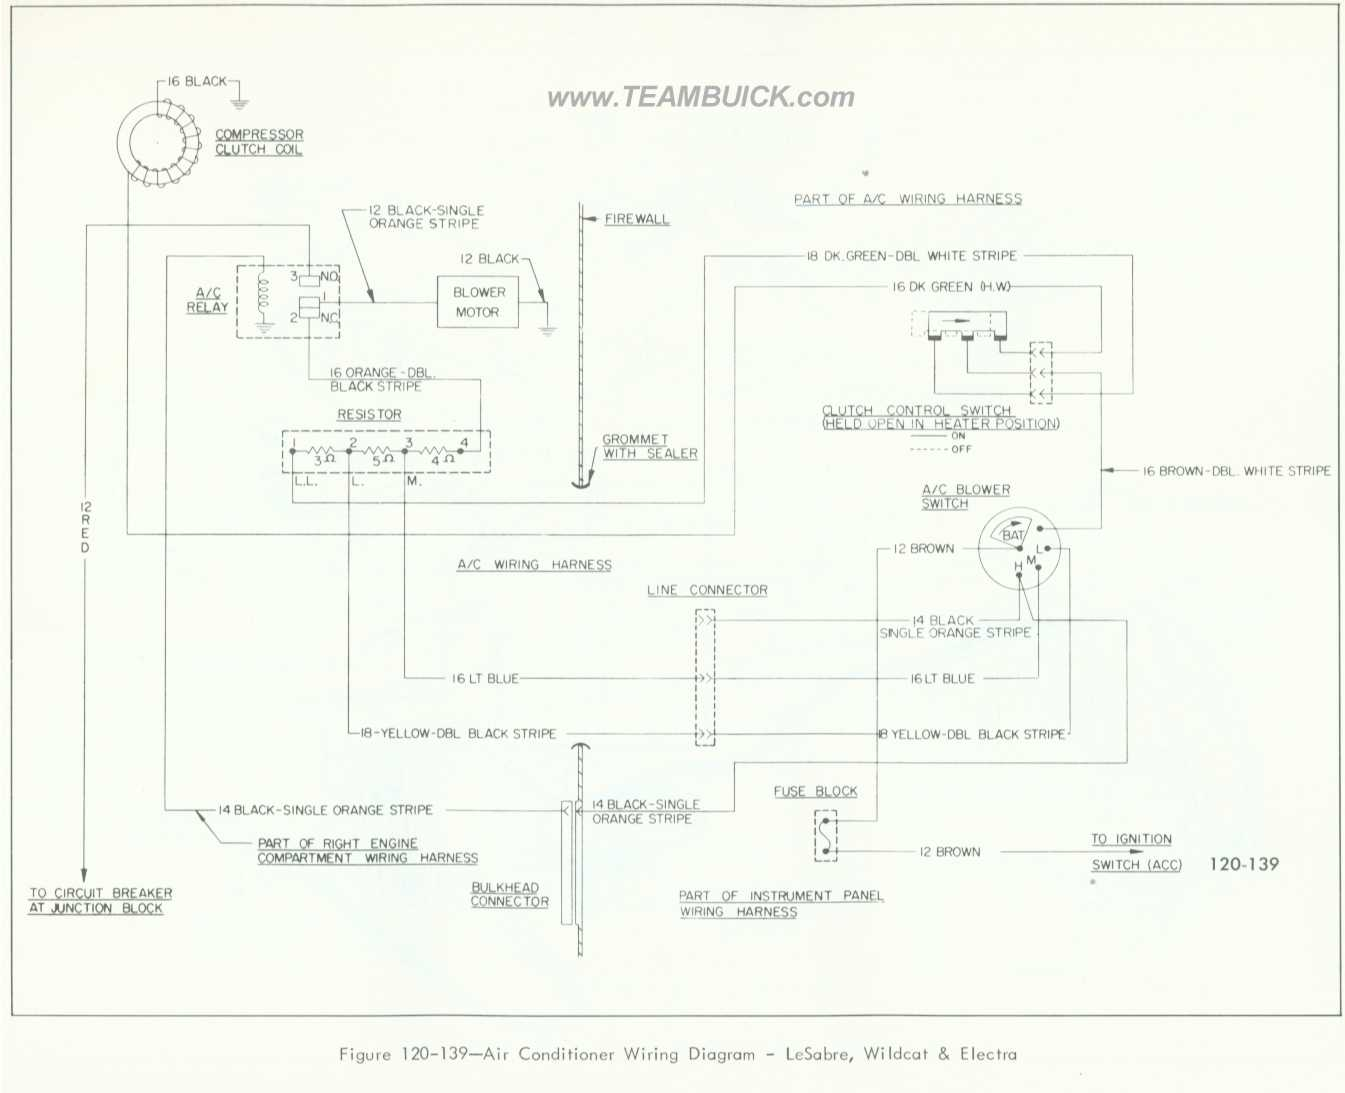 1966 buick wildcat wiring diagram